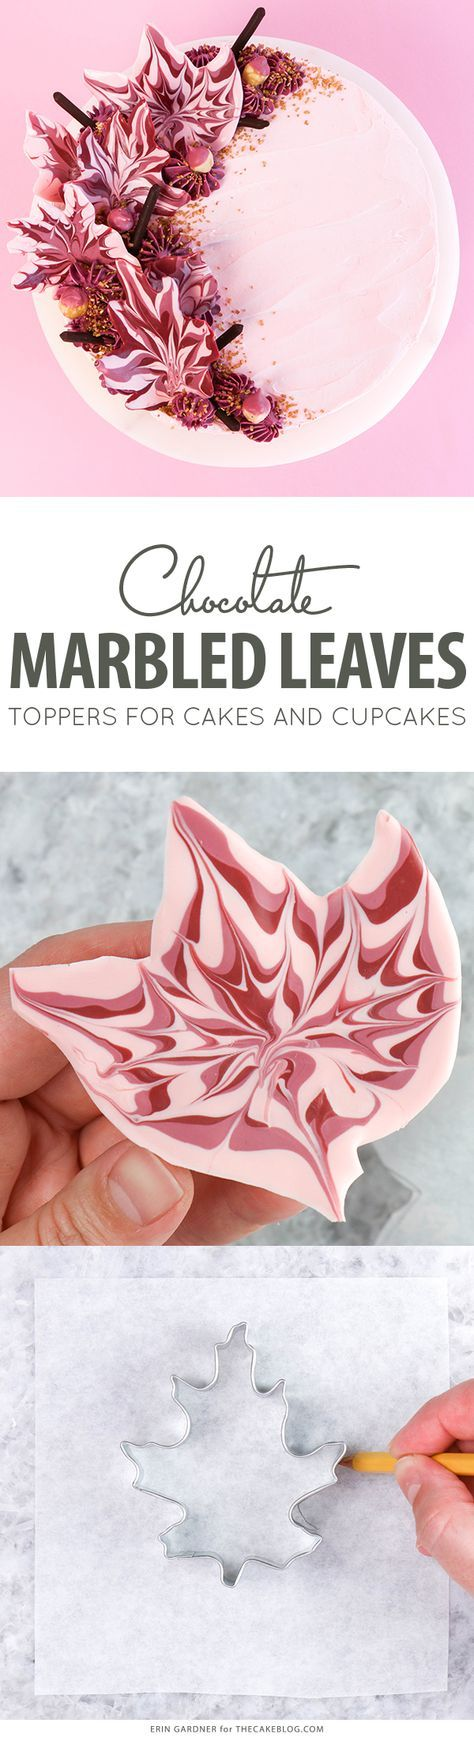 Marbled Chocolate Leaves – how to make marbled leaf toppers for cakes and cupcakes using chocolate coating and cookie cutters | by Erin Gardner for TheCakeBlog.com